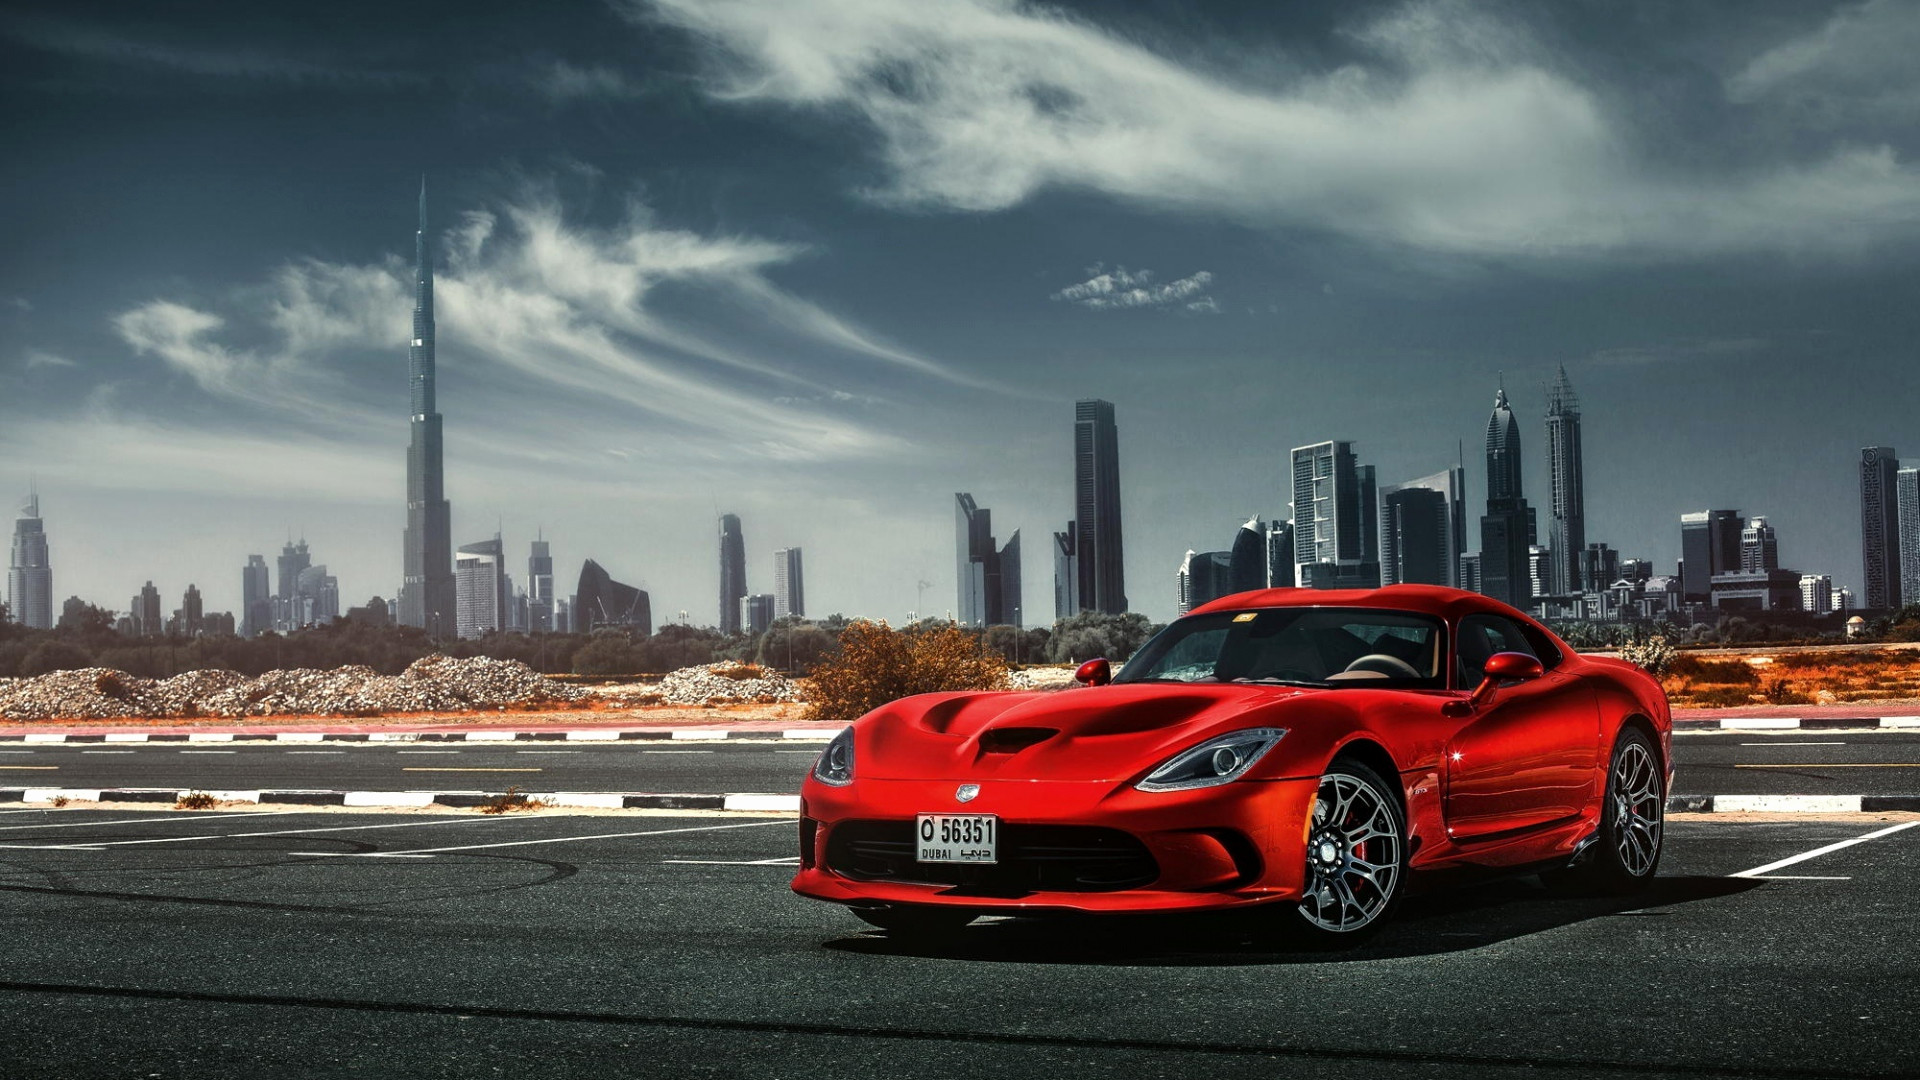 cool car wallpapers for desktop (68+ images)